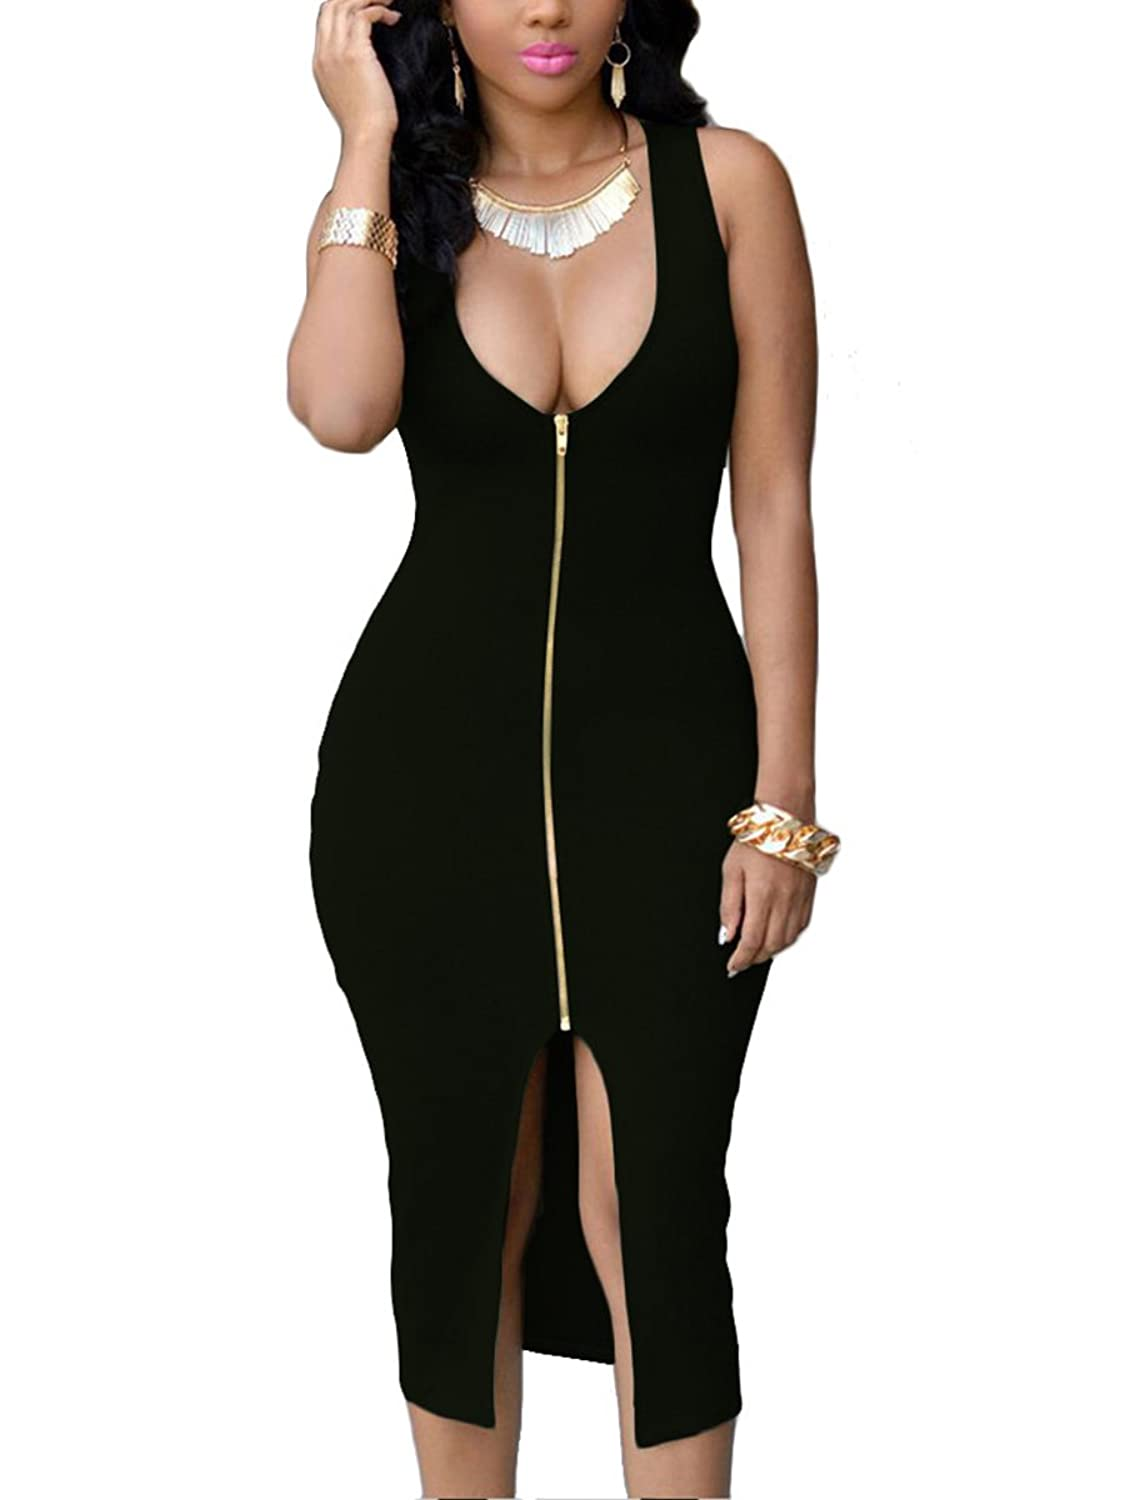 Amazon.com: YMING Women Zip-Front Bodycon Party Club Evening Plus Size Dress S-4XL: Clothing